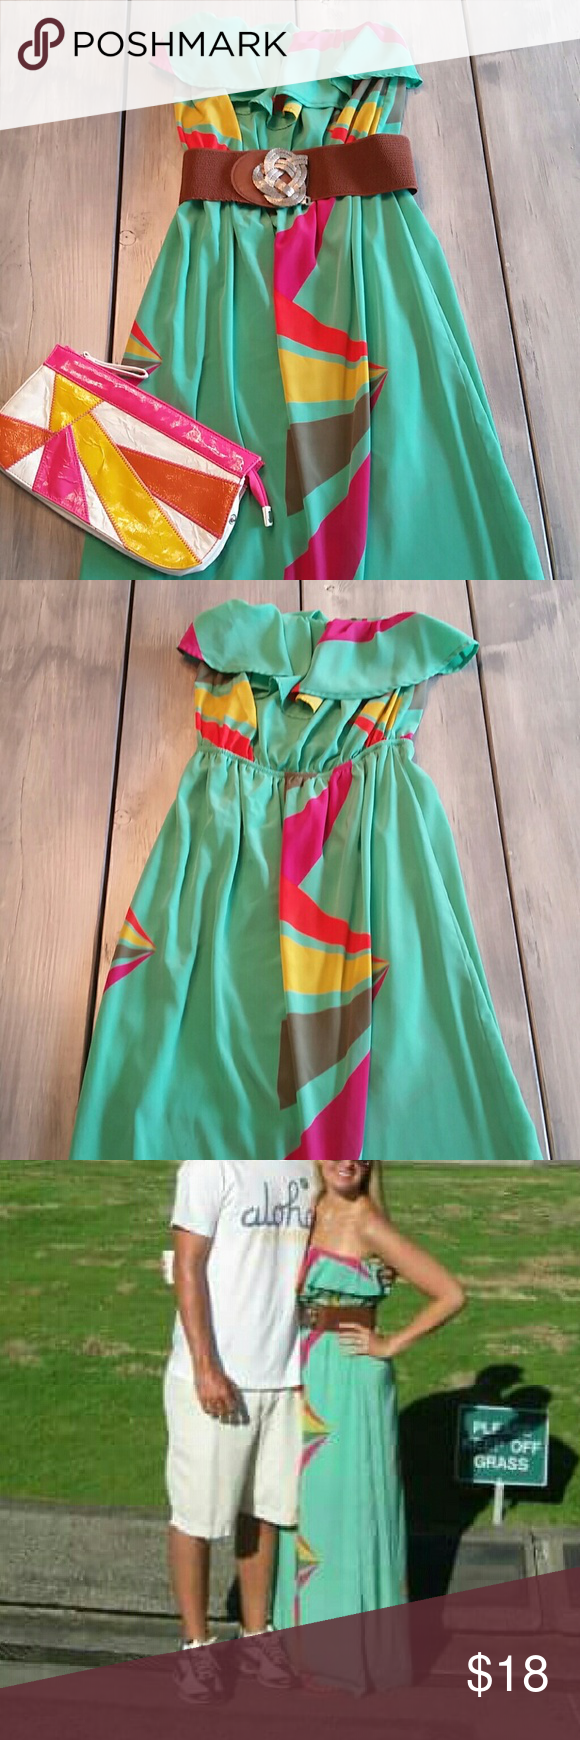 🚫SOLD🚫 Strapless Maxi Dress Beautiful strapless maxi dress is perfect for summer and even more so for vacation! Is in excellent condition with the only exception being a small pen mark which is pictured above.  Belt not included though the clutch pictured above is also listed for sale in my closet. There is no brand tag, but this was purchased in a boutique.   Dresses Maxi